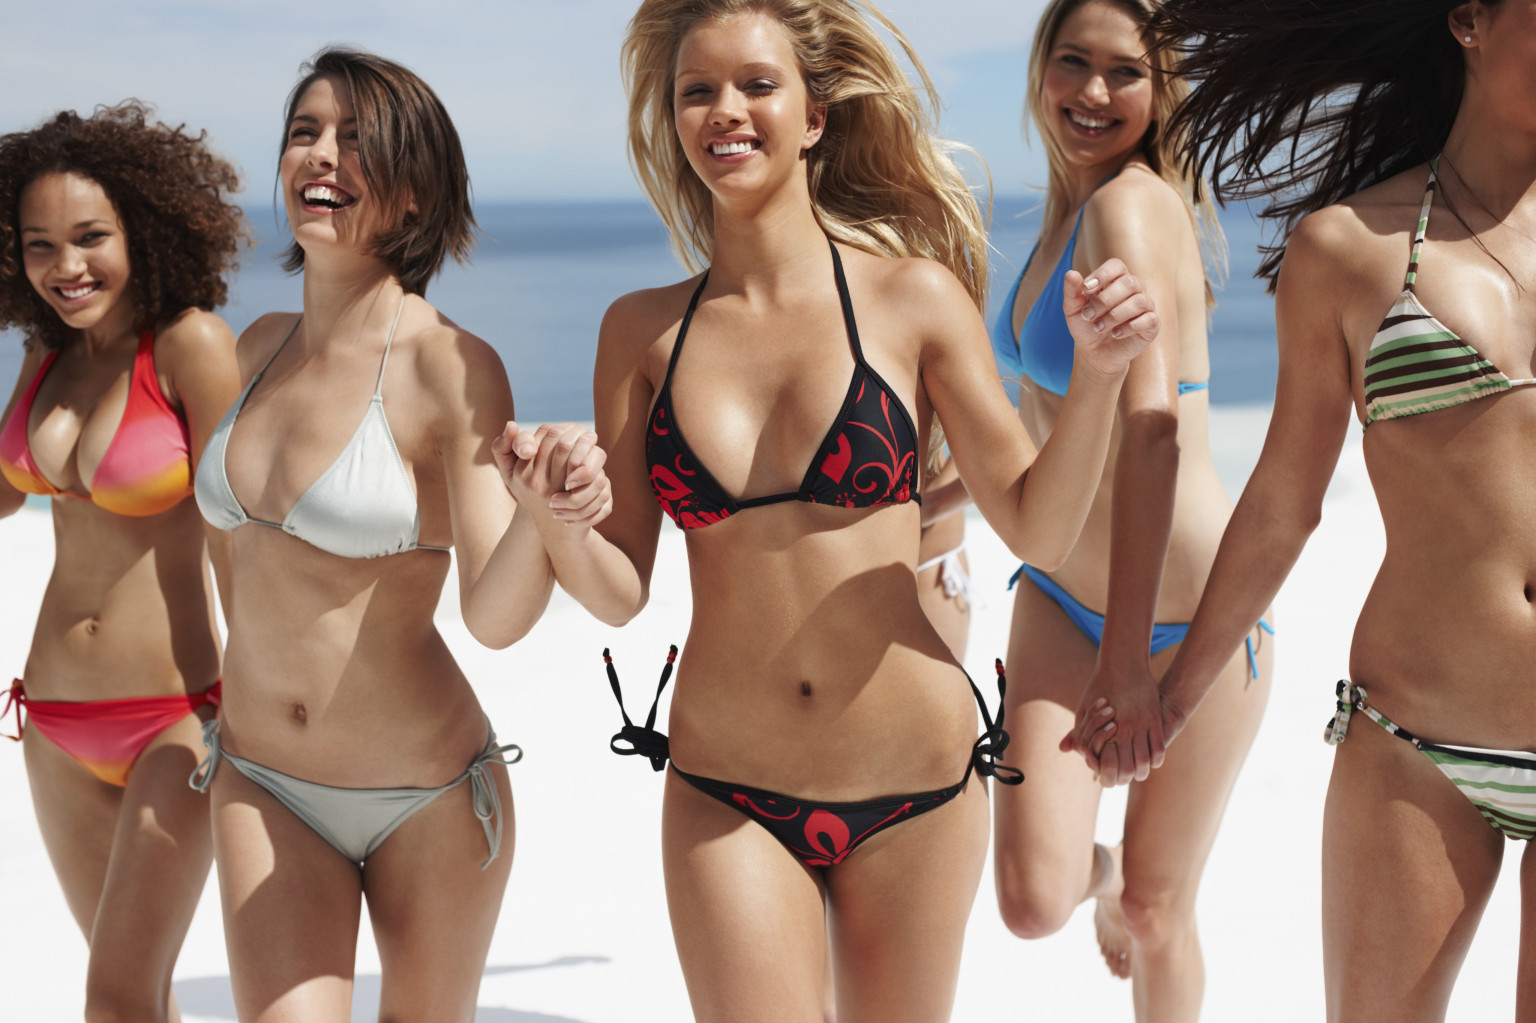 5 ways to compete with bikini babes on the beach | huffpost